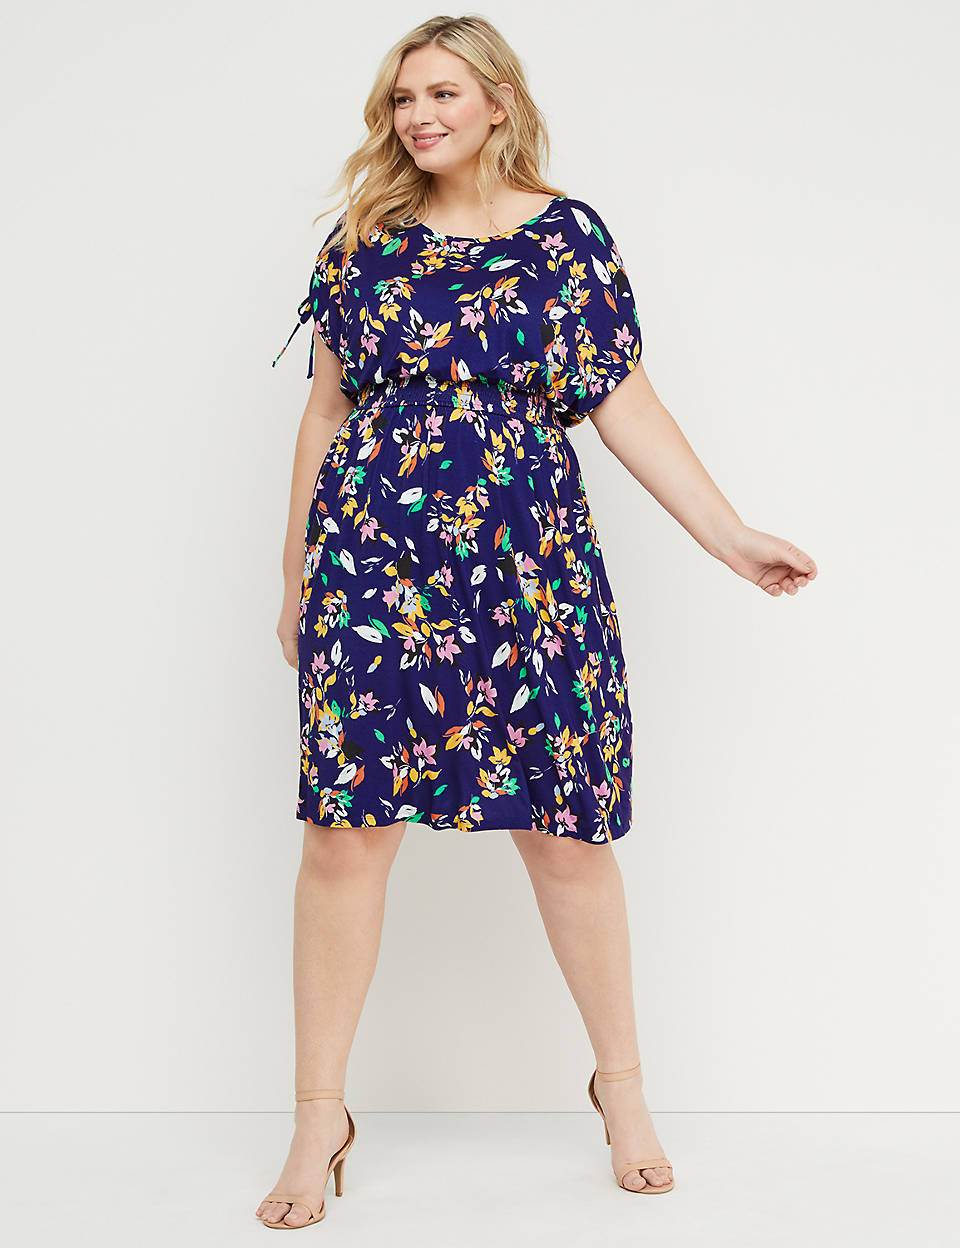 ddda131a Floral Midi Dresses With Sleeves - raveitsafe